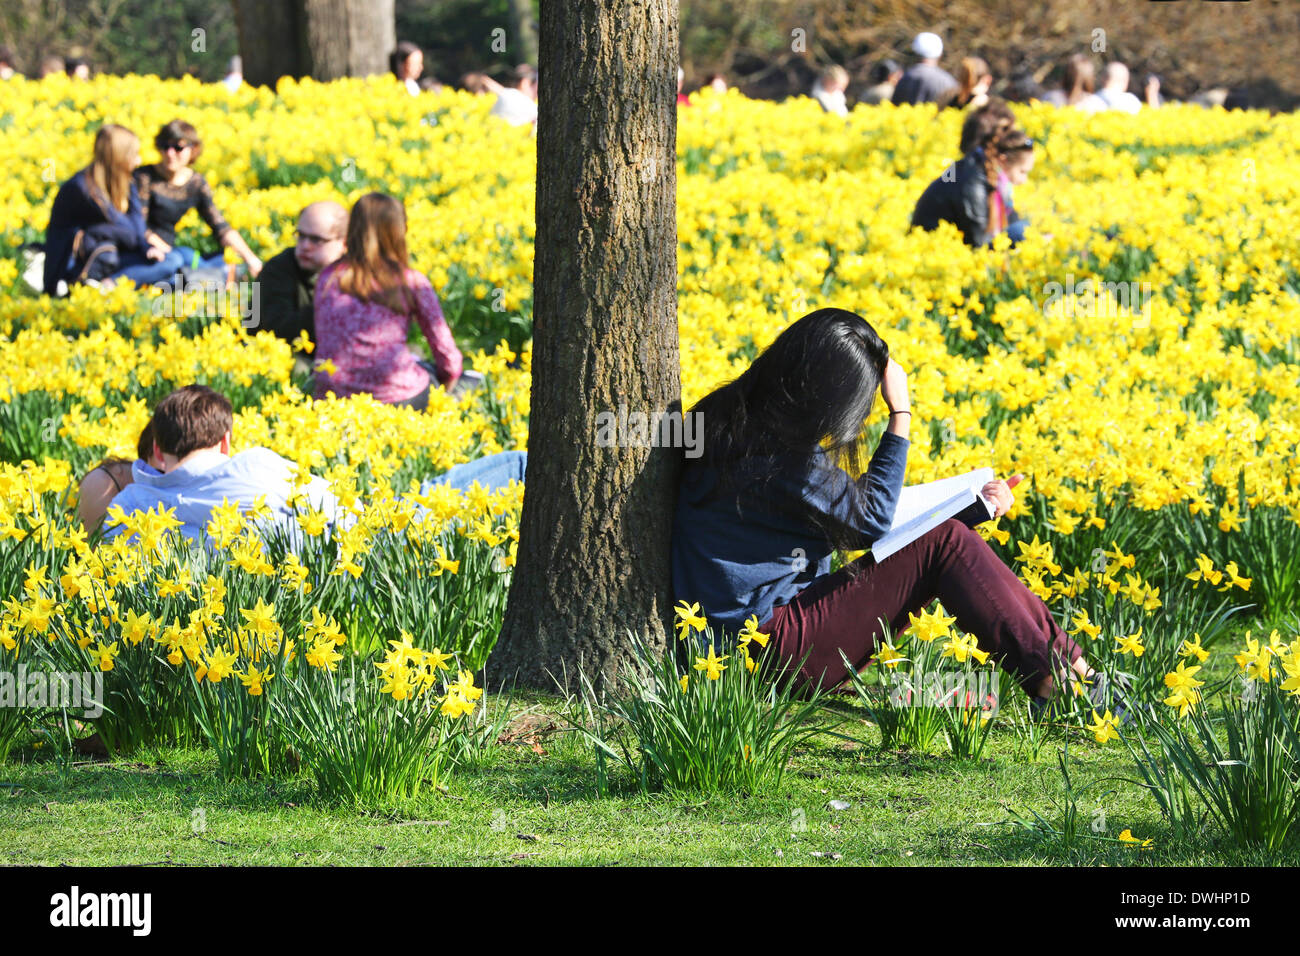 Warm Weather People Enjoying The Warm Weather And Spring Daffodils In St James Park,  London, England. The Beautiful Weather Brought Londoners And Tourists Out  To The ...